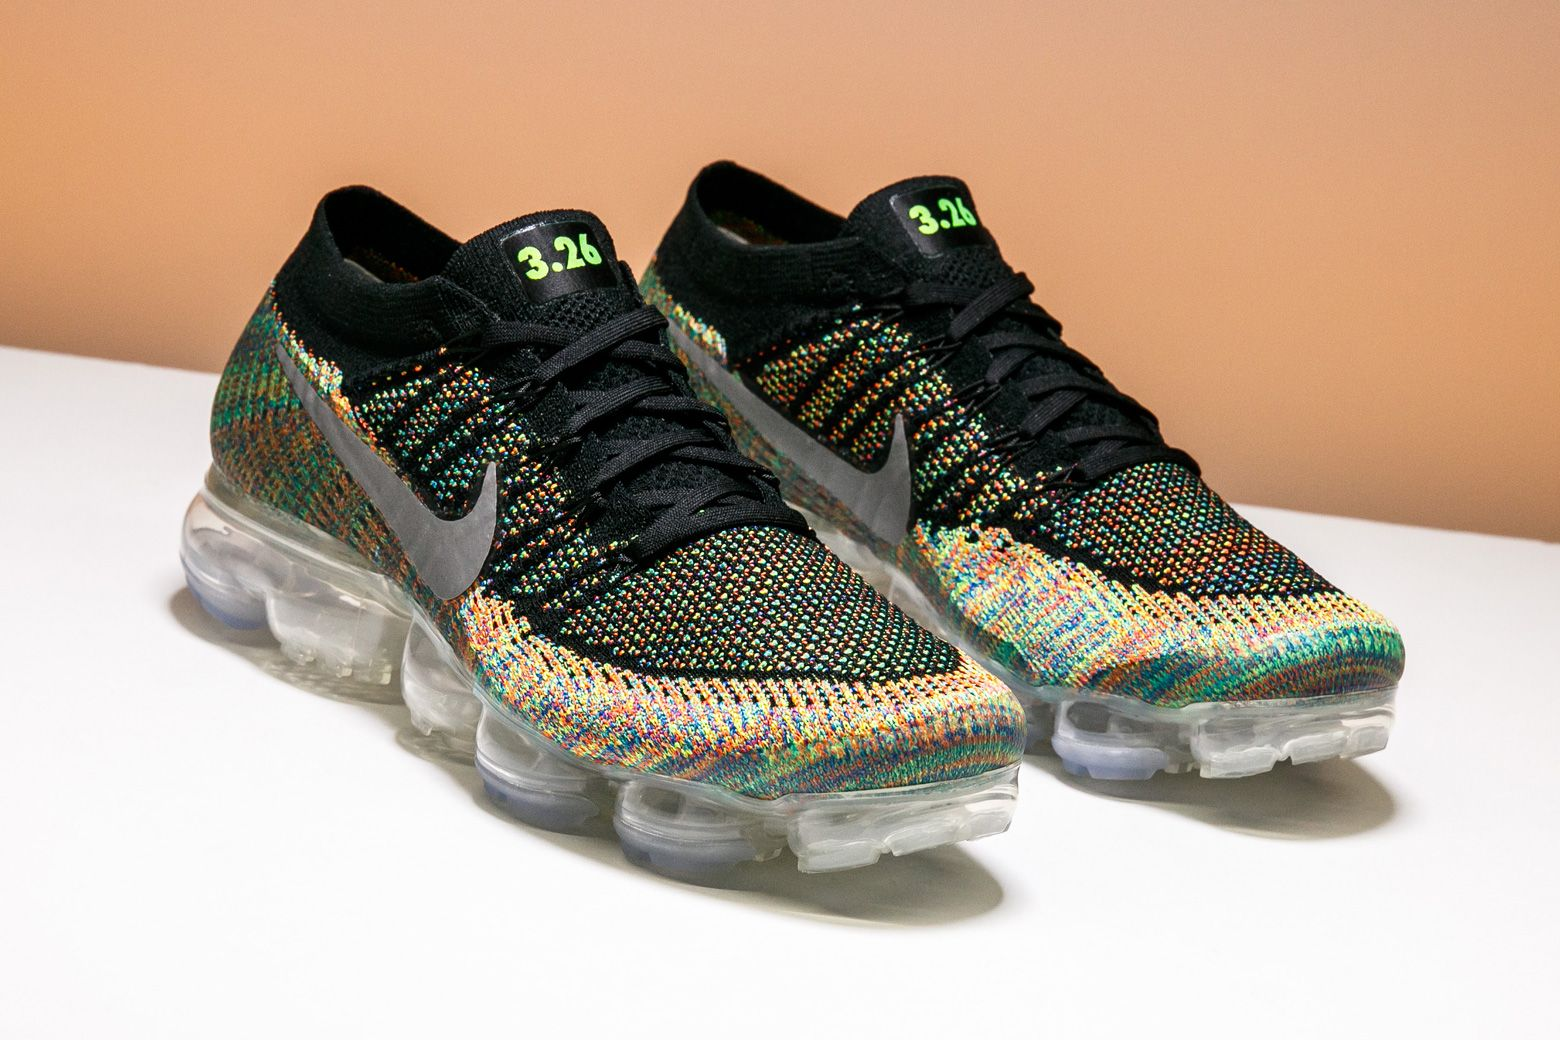 Air Max Day 2017 brought us this multicolor pair of the Nike Air VaporMax  iD.